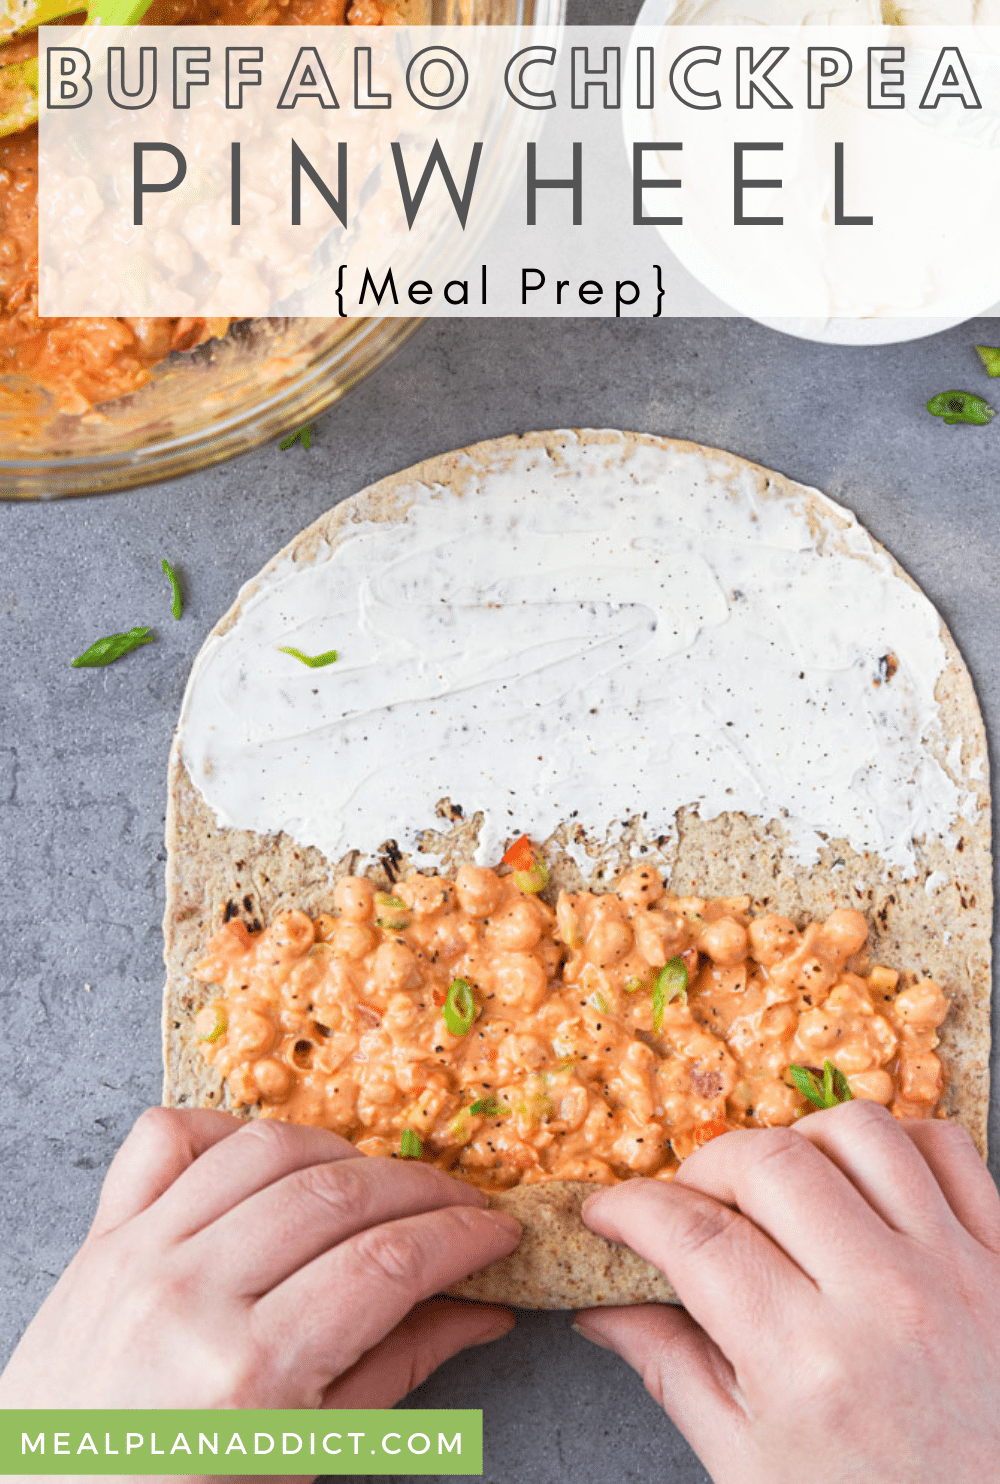 Buffalo Chickpea Pinwheel Meal Prep is a no cook, quick and easy vegetarian lunch box for your on the go life. Prep these for 3 days and just grab and go in the morning!